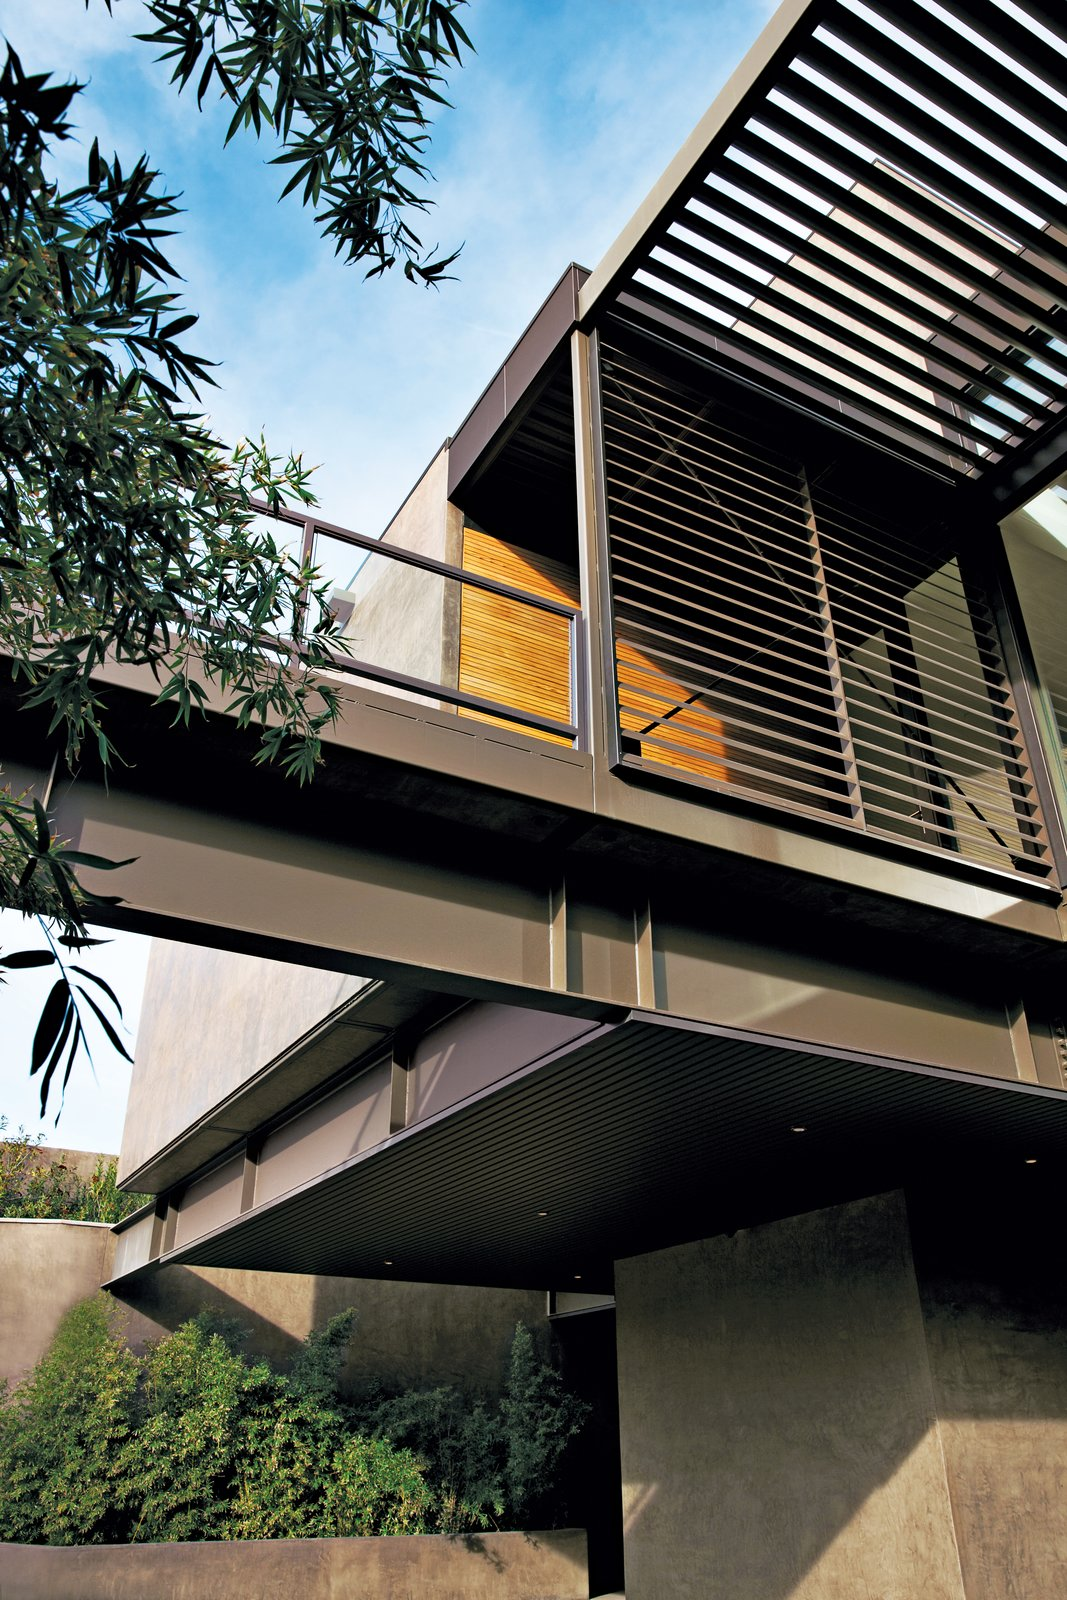 Twenty-two 12-foot-wide steel-frame modules were combined to form nine to 14-foot-high rooms that were stacked and bolted together. Ten deck modules added more than 4,700 square feet of sheltered outdoor space. Image courtesy of Jill Paider.